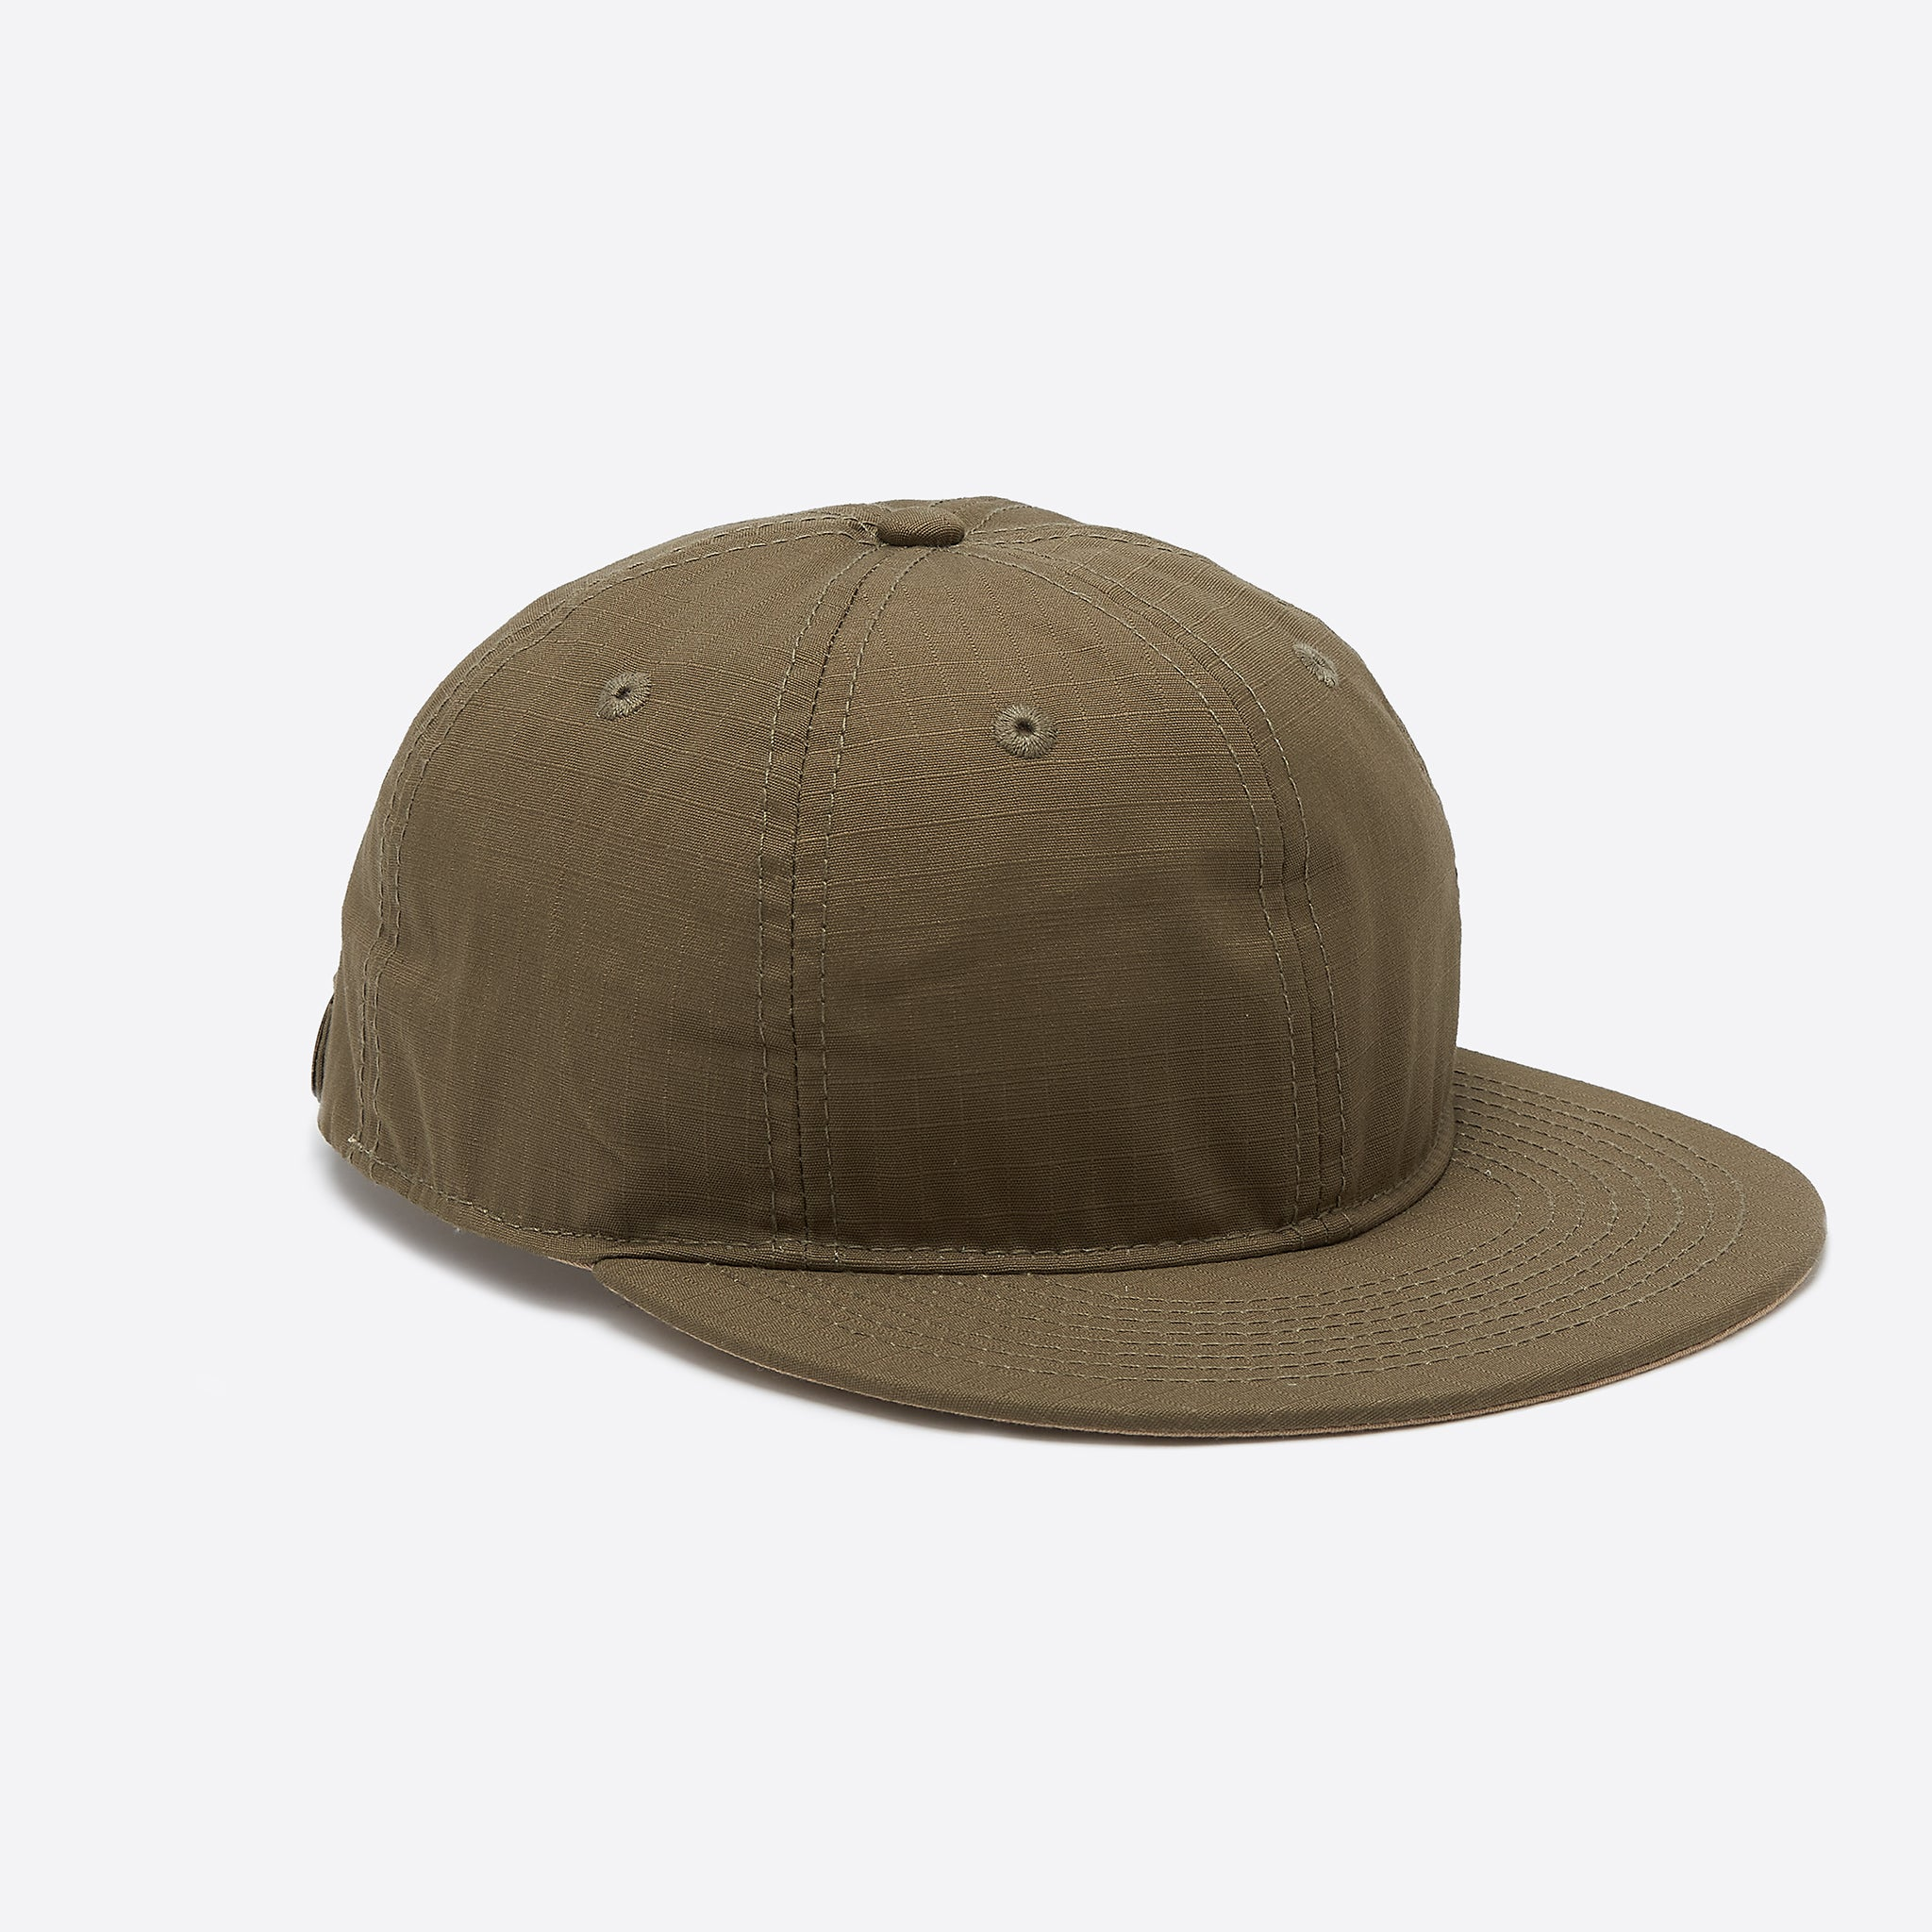 Satta Ripstop Cap in Muted Olive